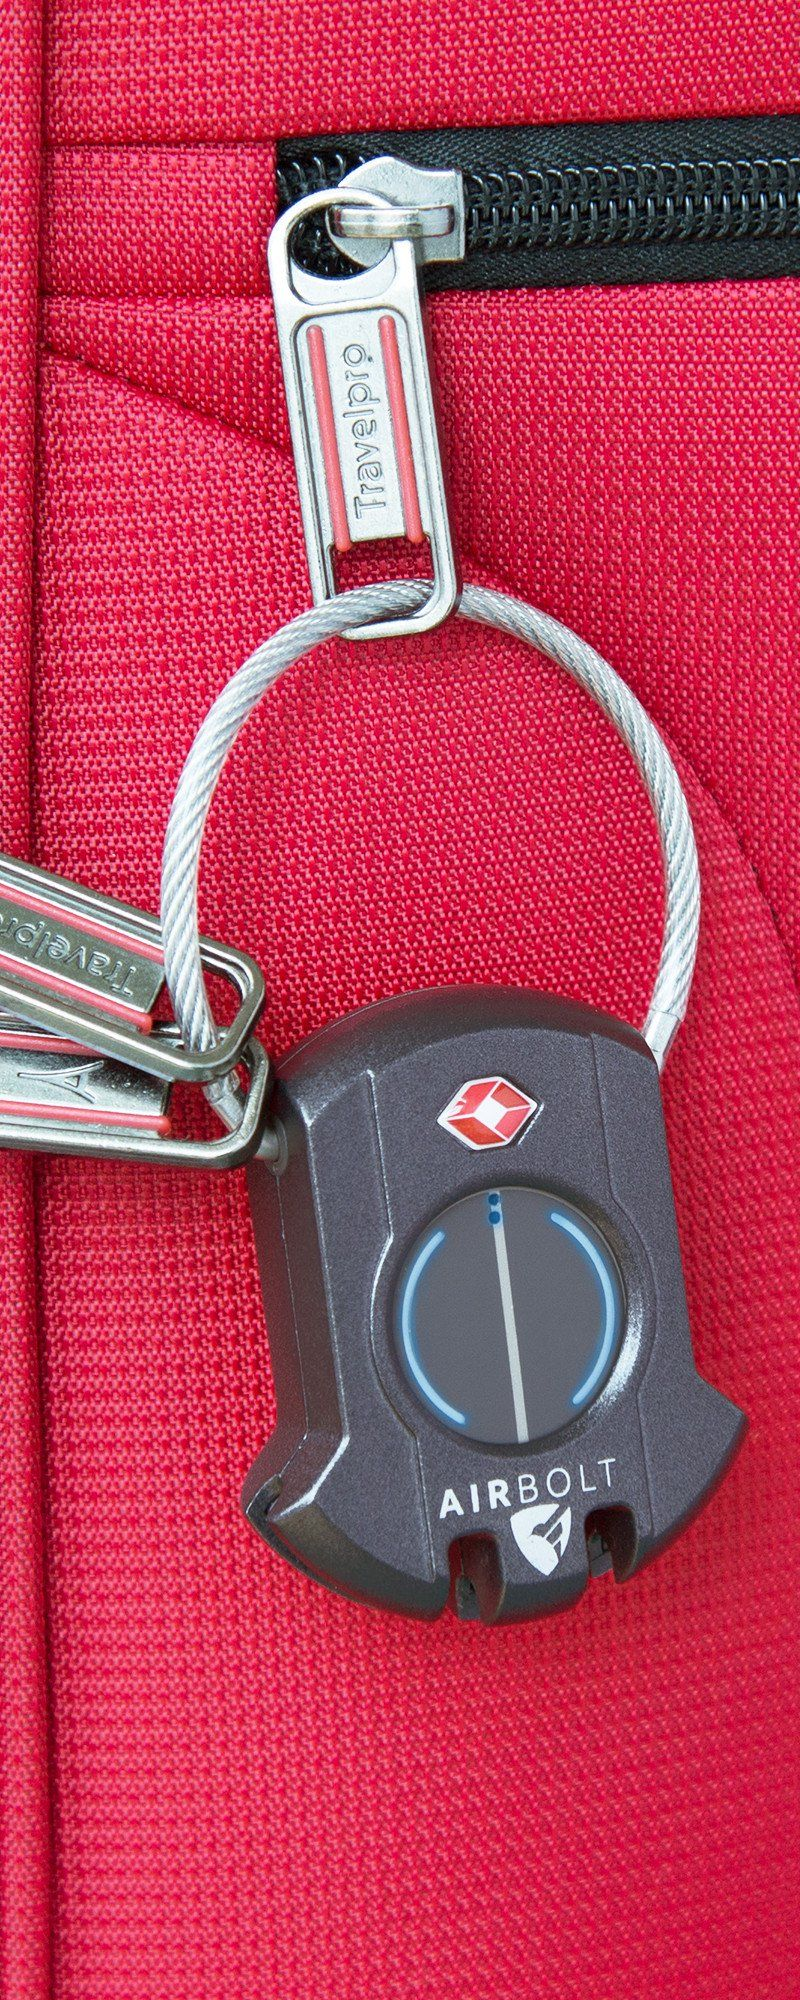 Lock Your Suitcase From Your Phone And Track It Too This Bluetooth Connected Lock Does Both And Gives The Option T Travel Lock Travel Packing Tips For Travel